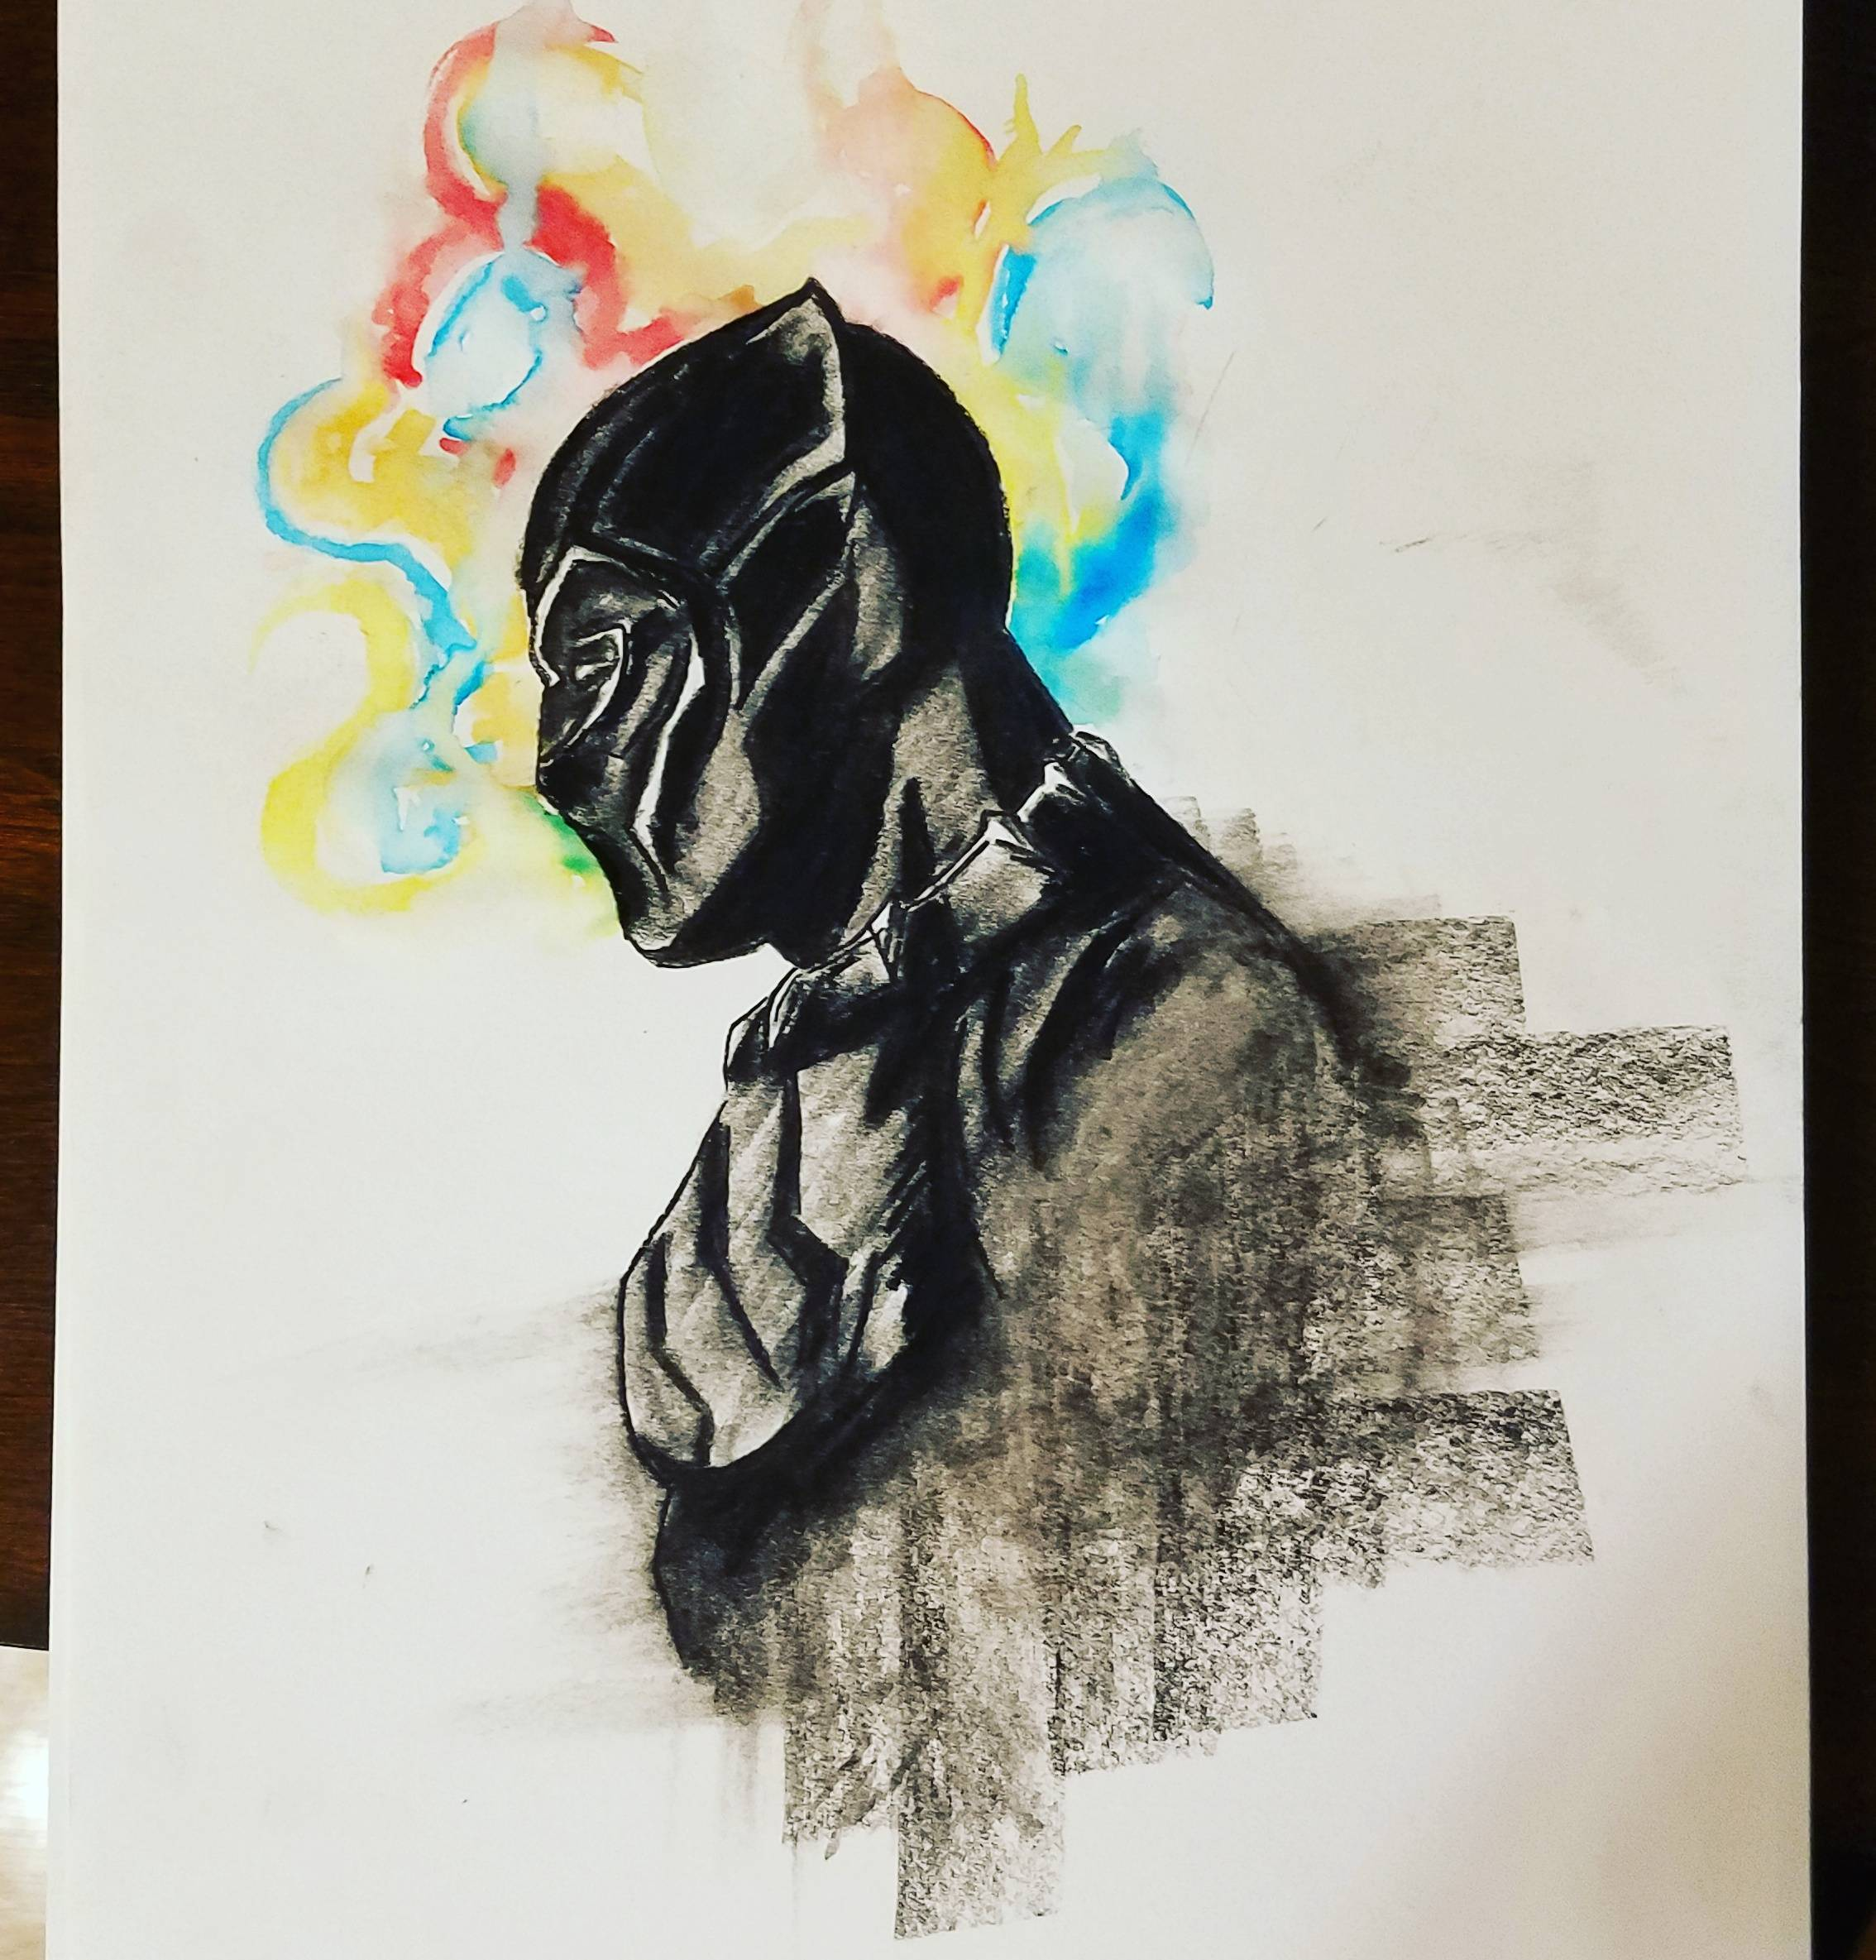 2268x2369 My Take On The Nrw Black Panther Poster (Charcoal And Watercolor